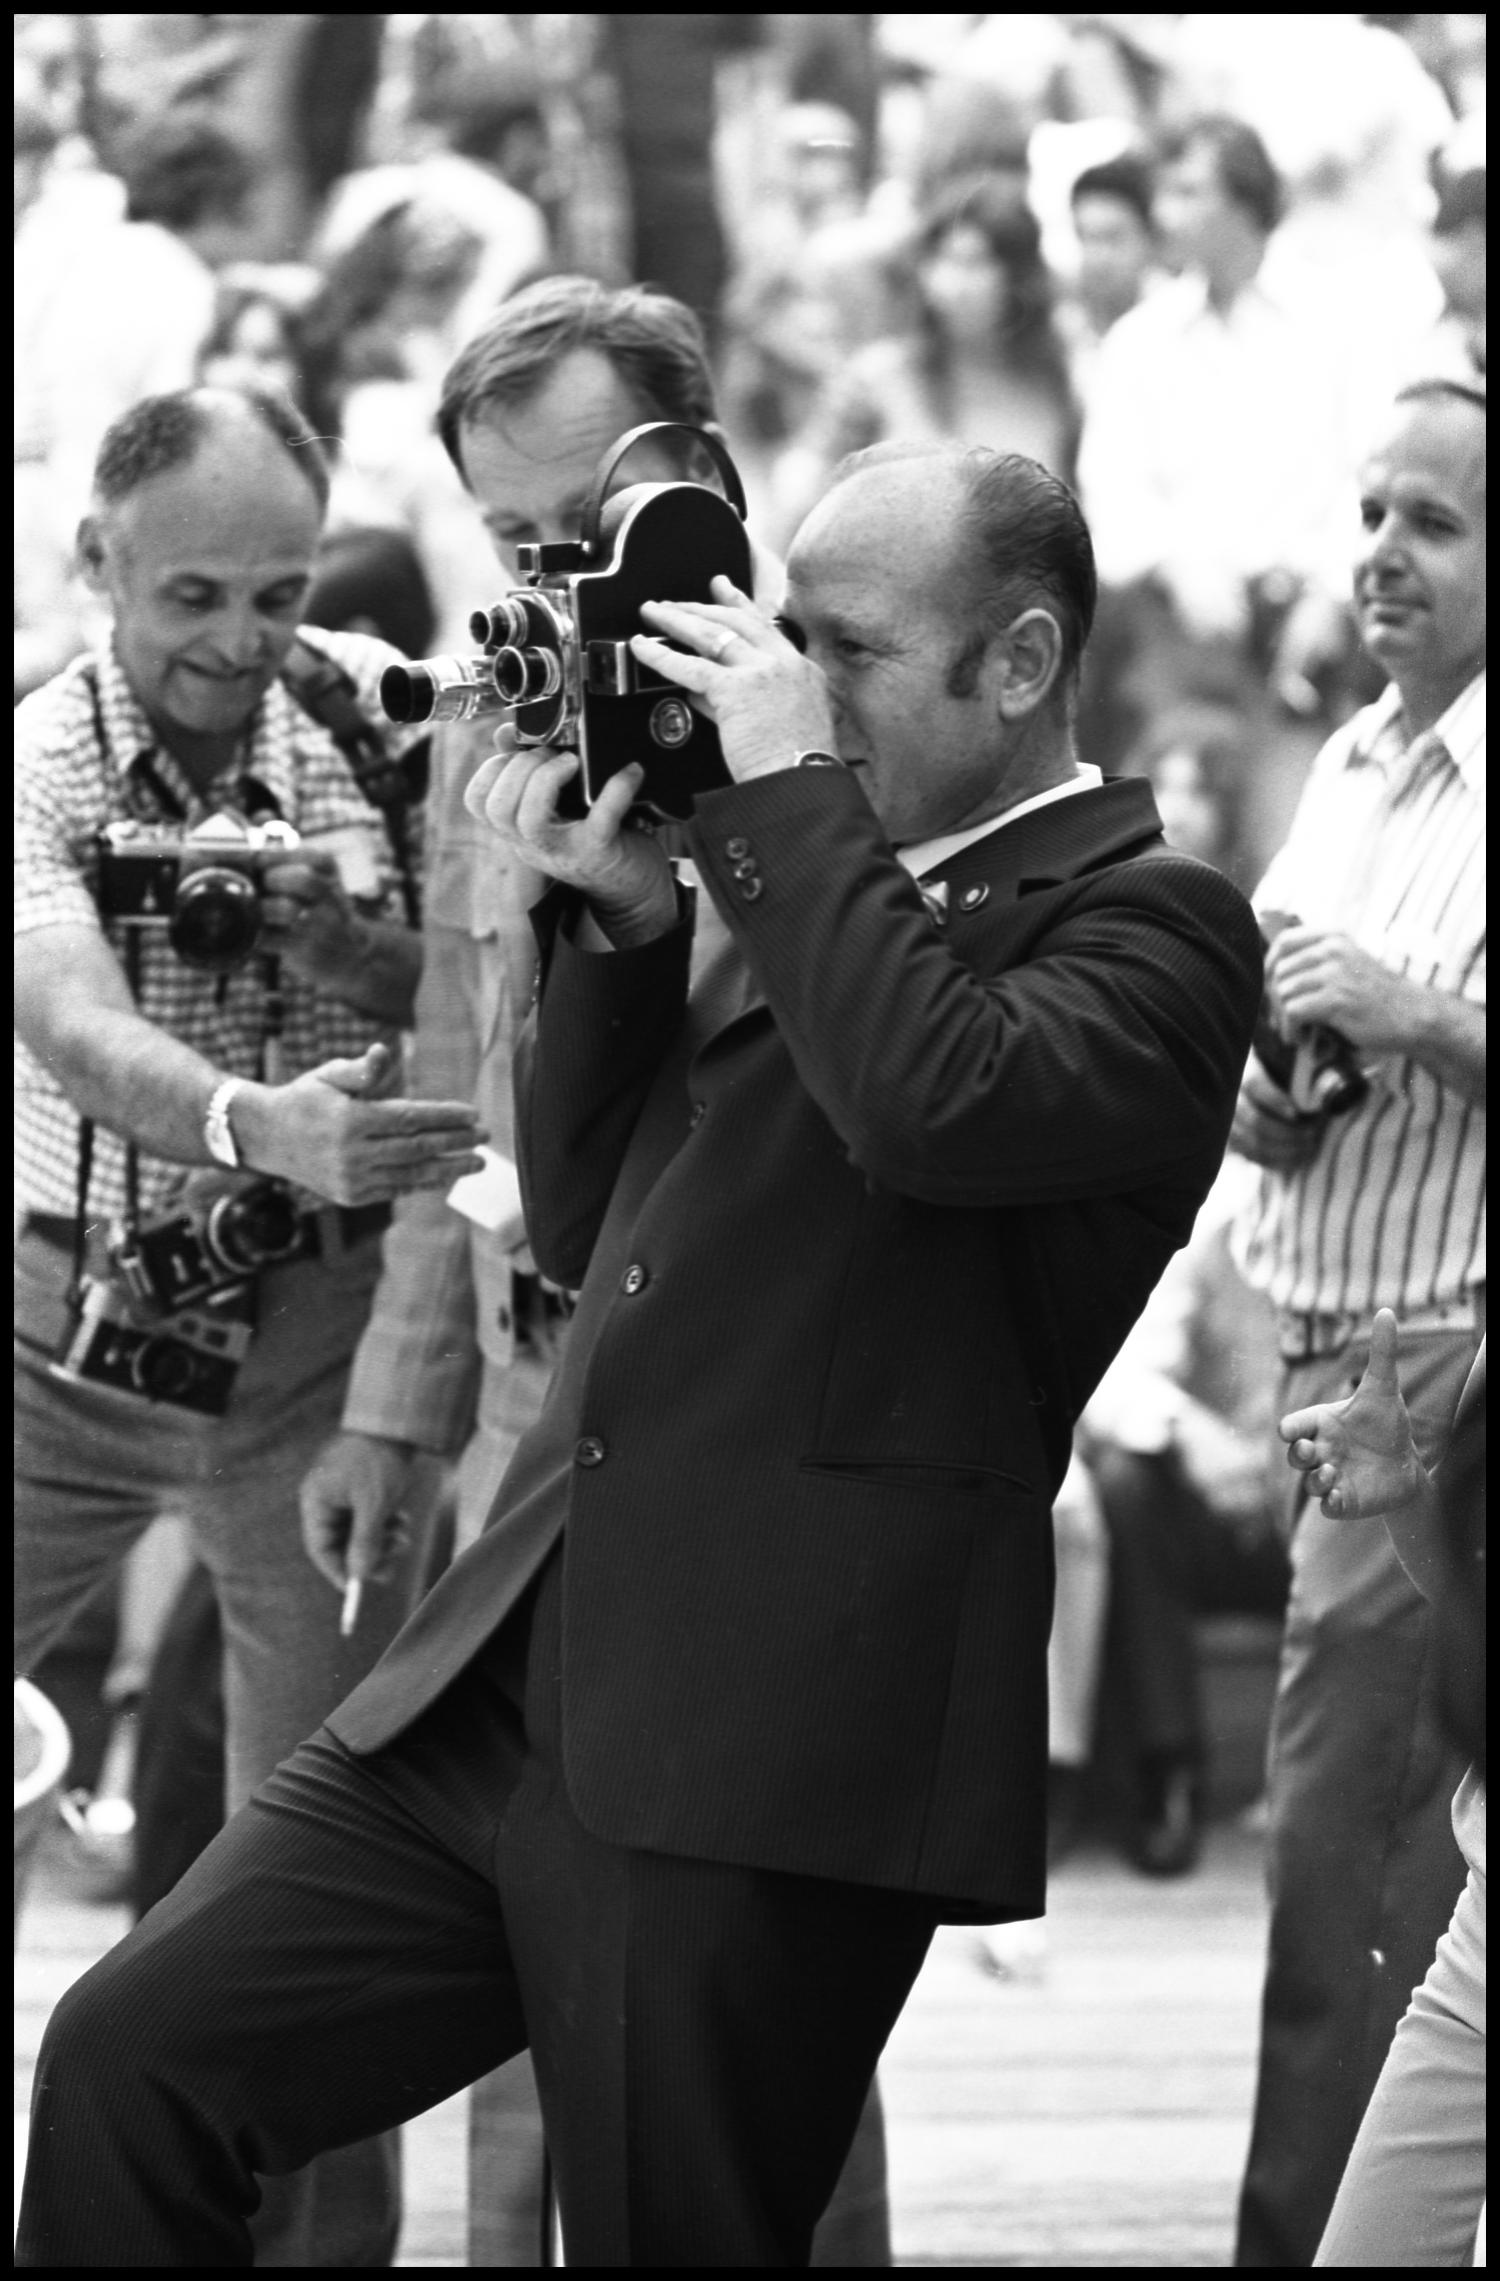 [Alexey A. Leonov Filming at the Texas Folklife Festival]                                                                                                      [Sequence #]: 1 of 1